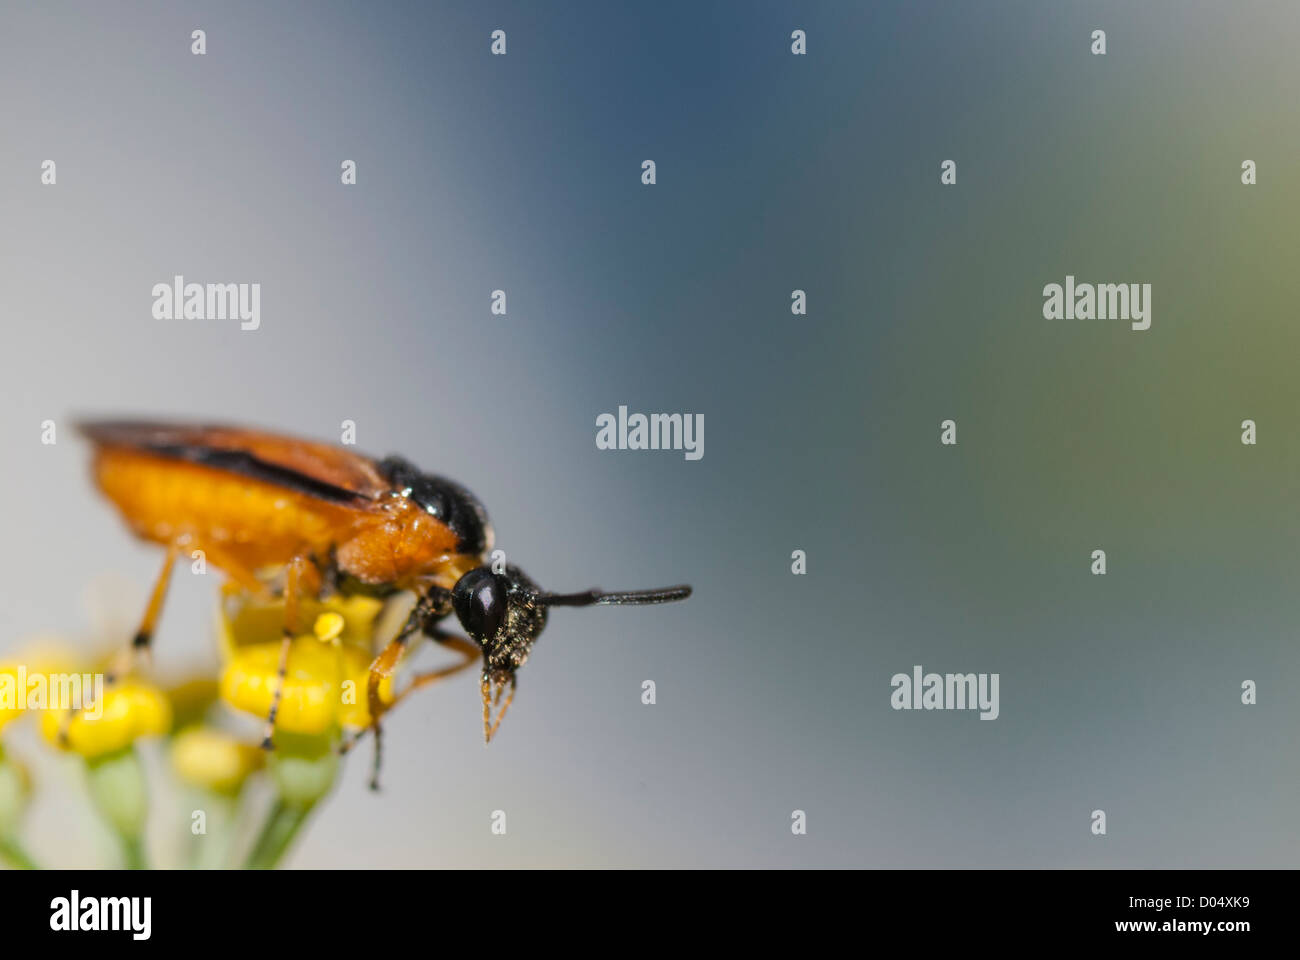 A Sawfly, Arge ochropus, perched on Fennel flowers in a South Yorkshire garden. Stock Photo